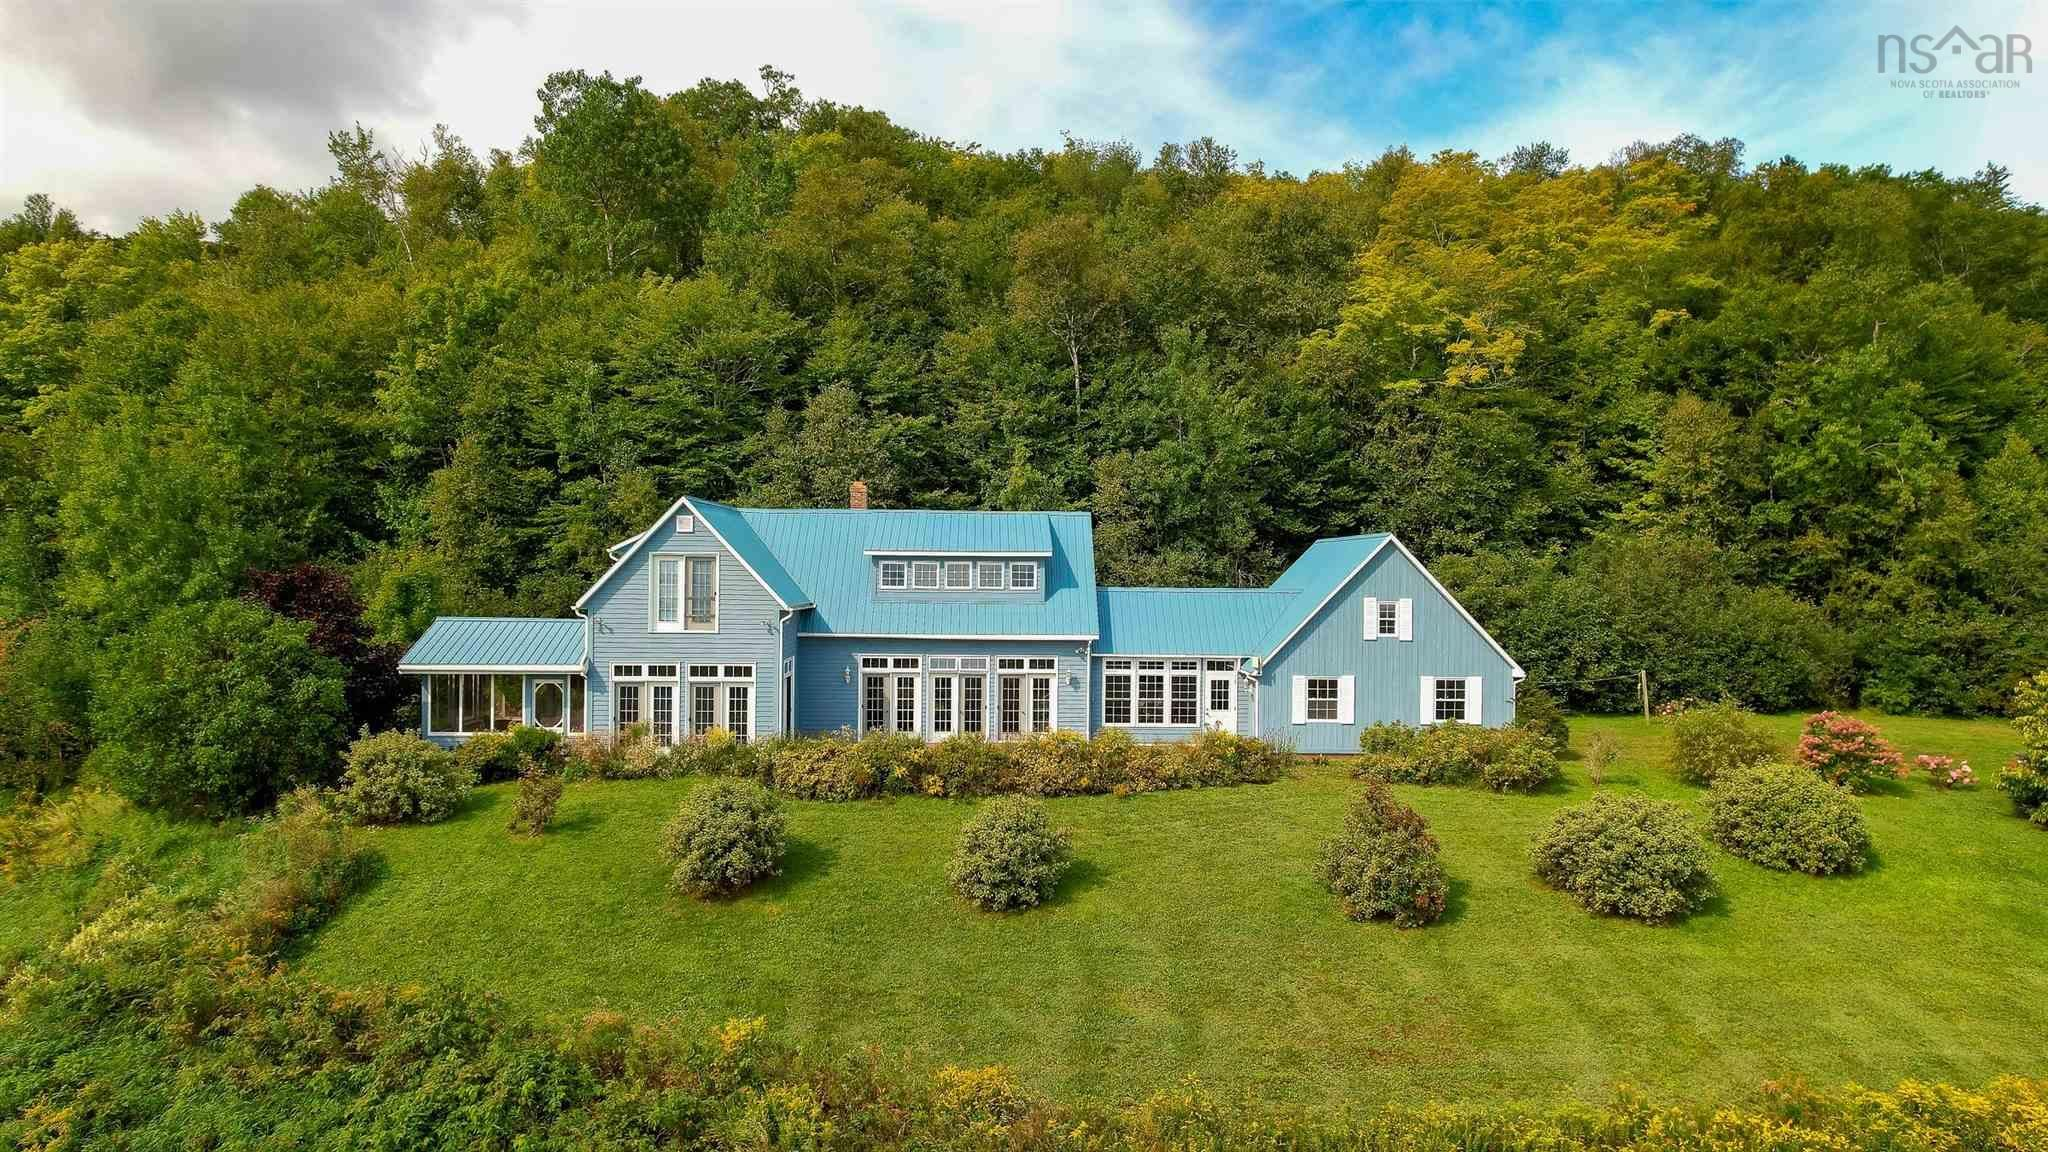 Main Photo: 380 Stewart Mountain Road in Blomidon: 404-Kings County Residential for sale (Annapolis Valley)  : MLS®# 202123106